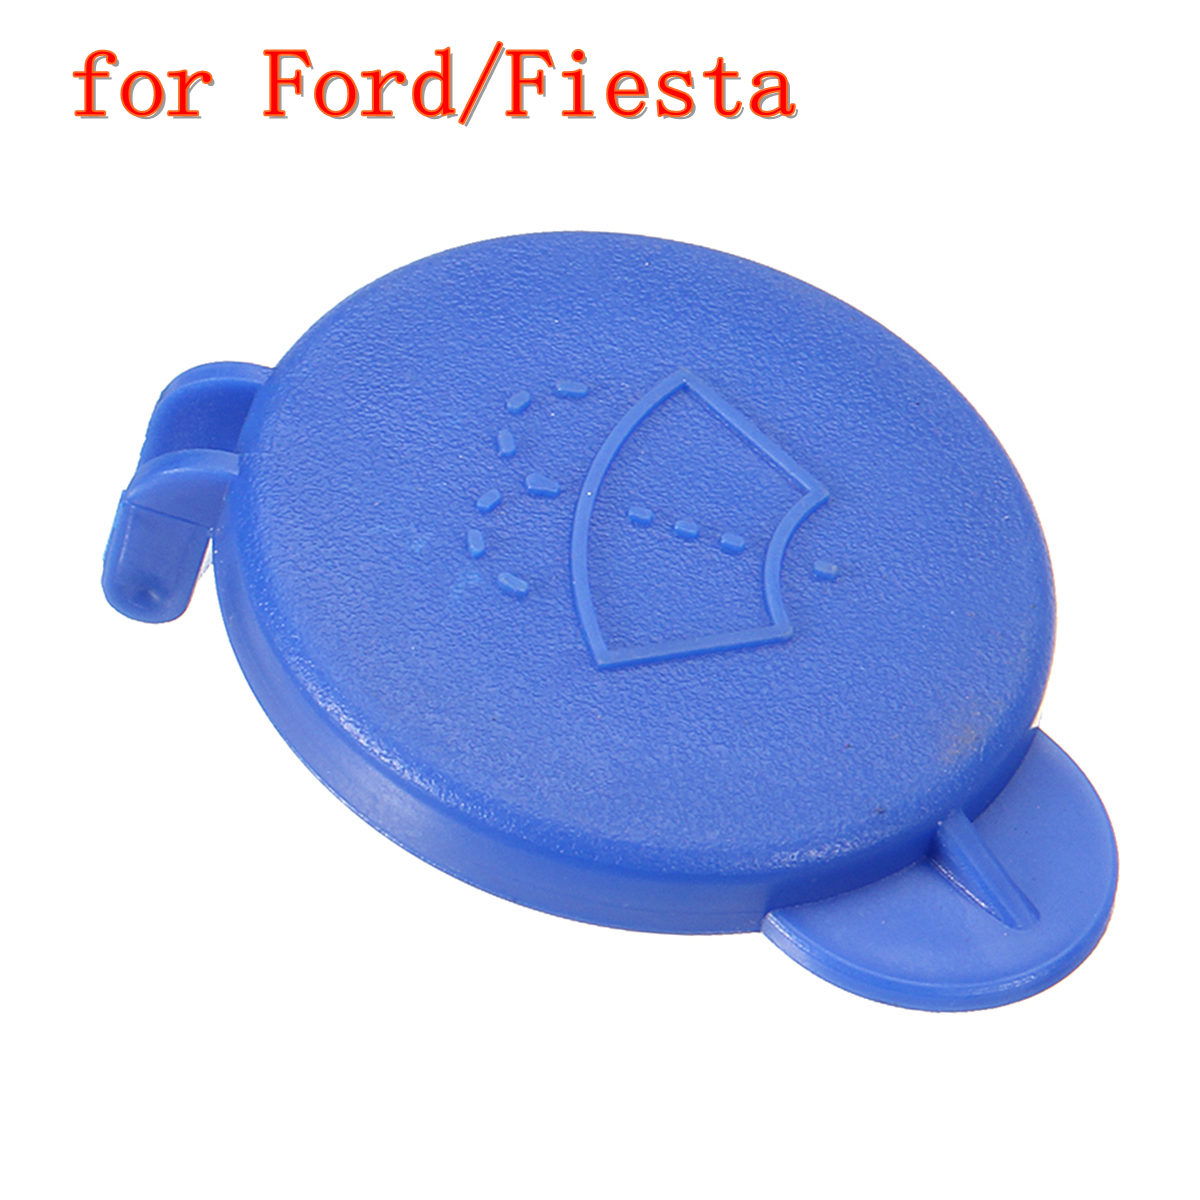 Windscreen Washer Bottle Cap For Ford For Fiesta MK6 2001-2008 Blue 1488251 2S61 17632AD